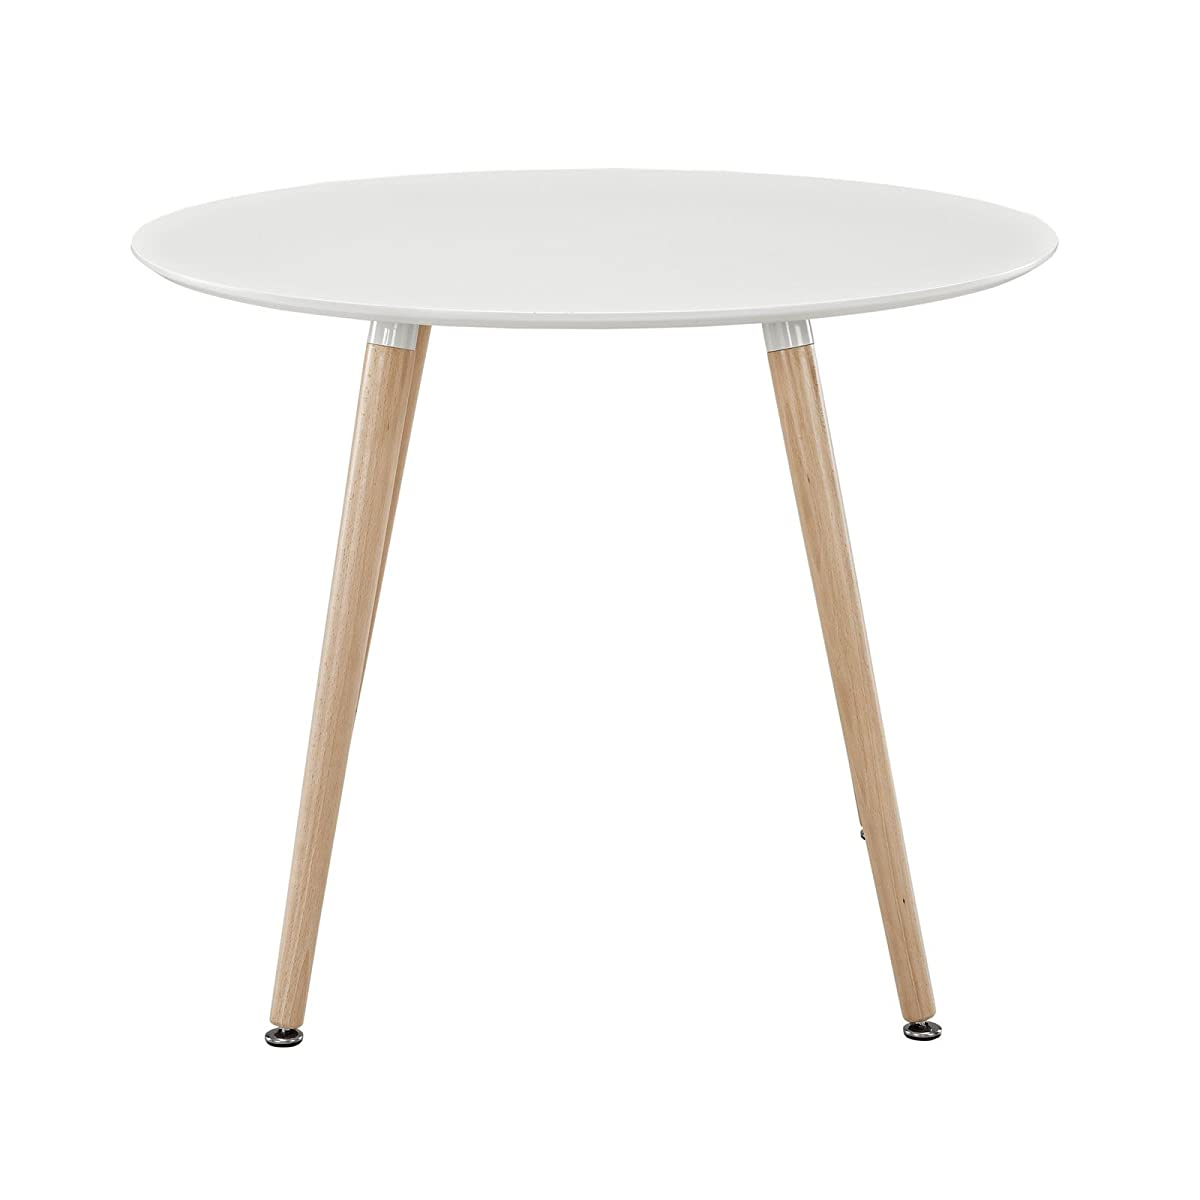 Modway Track Circular Dining Table in White